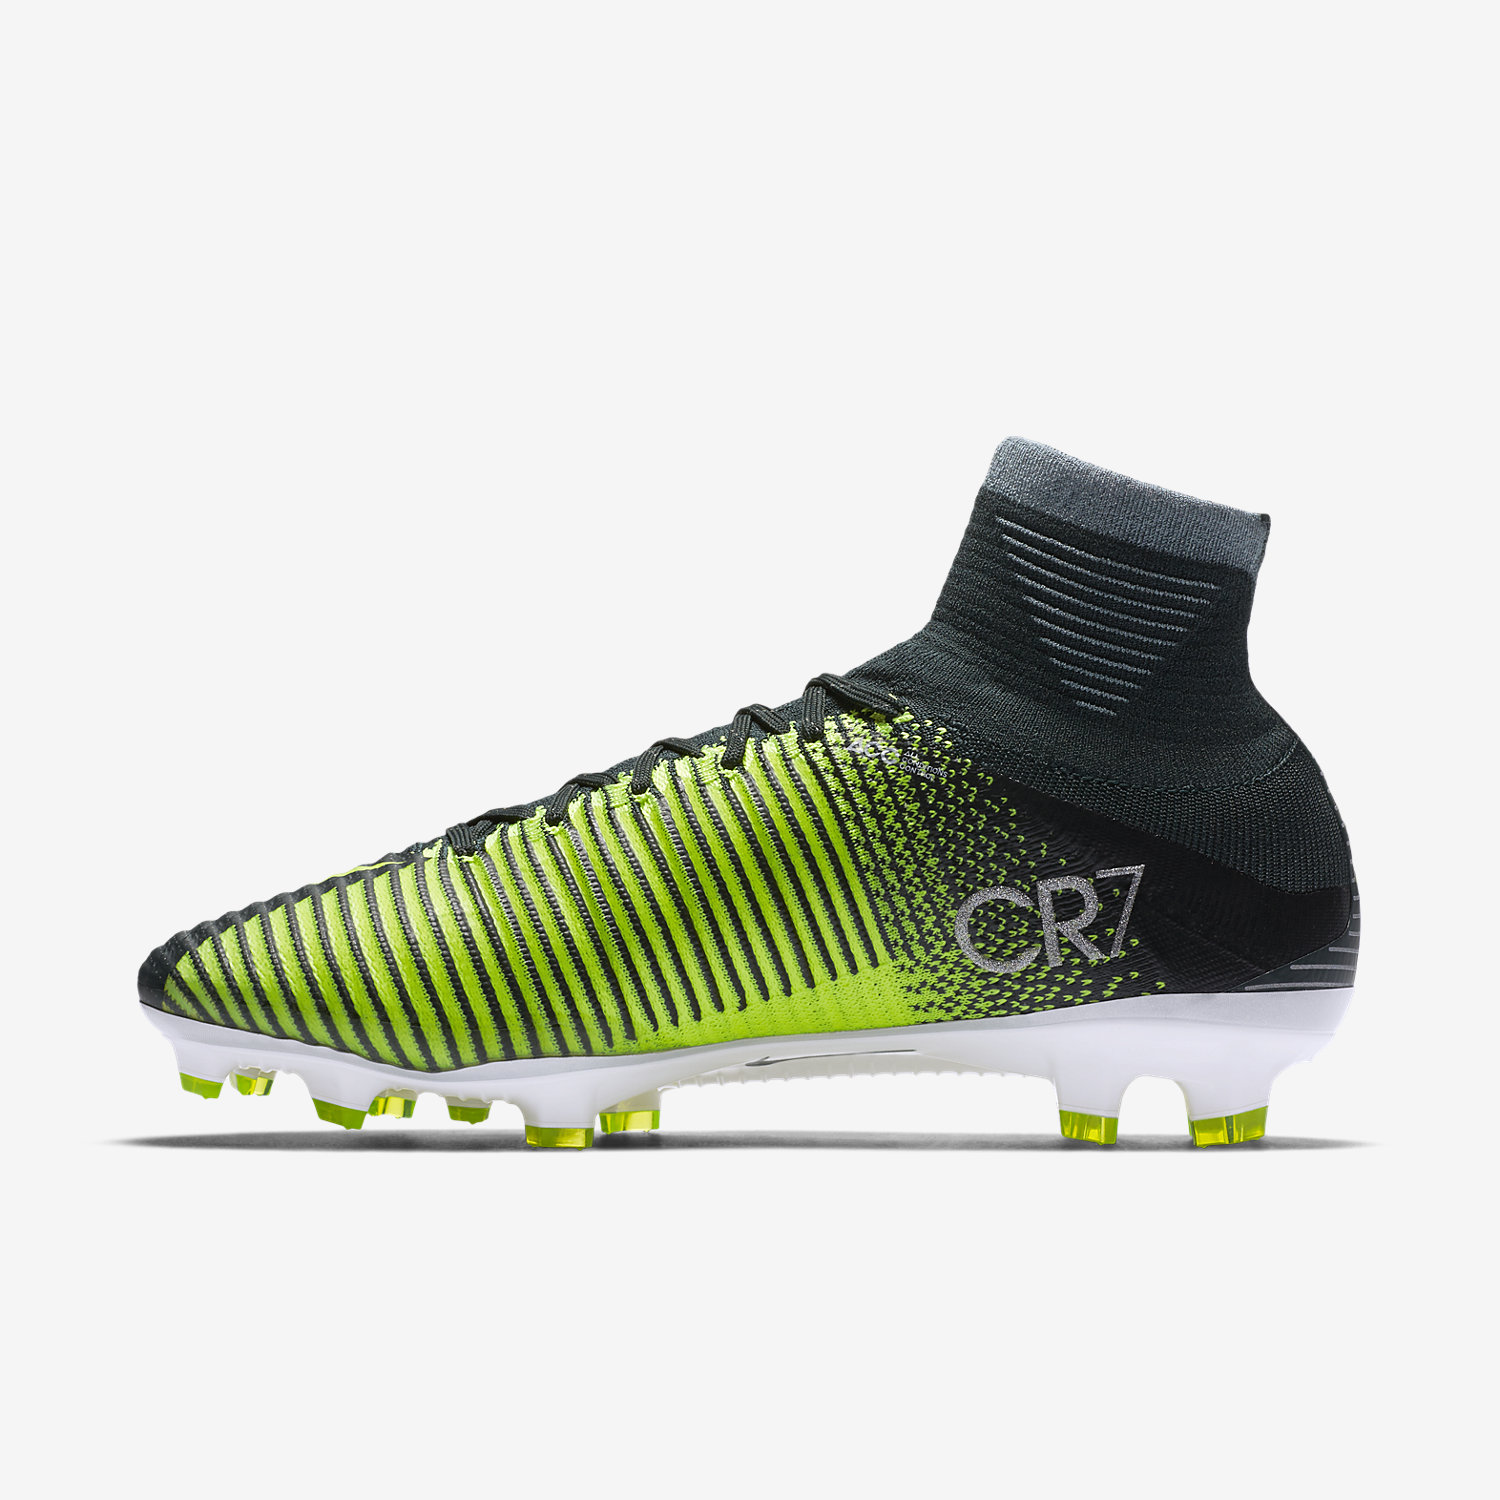 7e48bfbde0 germany nike mercurial superfly cr7 black jack 4d91d 814db